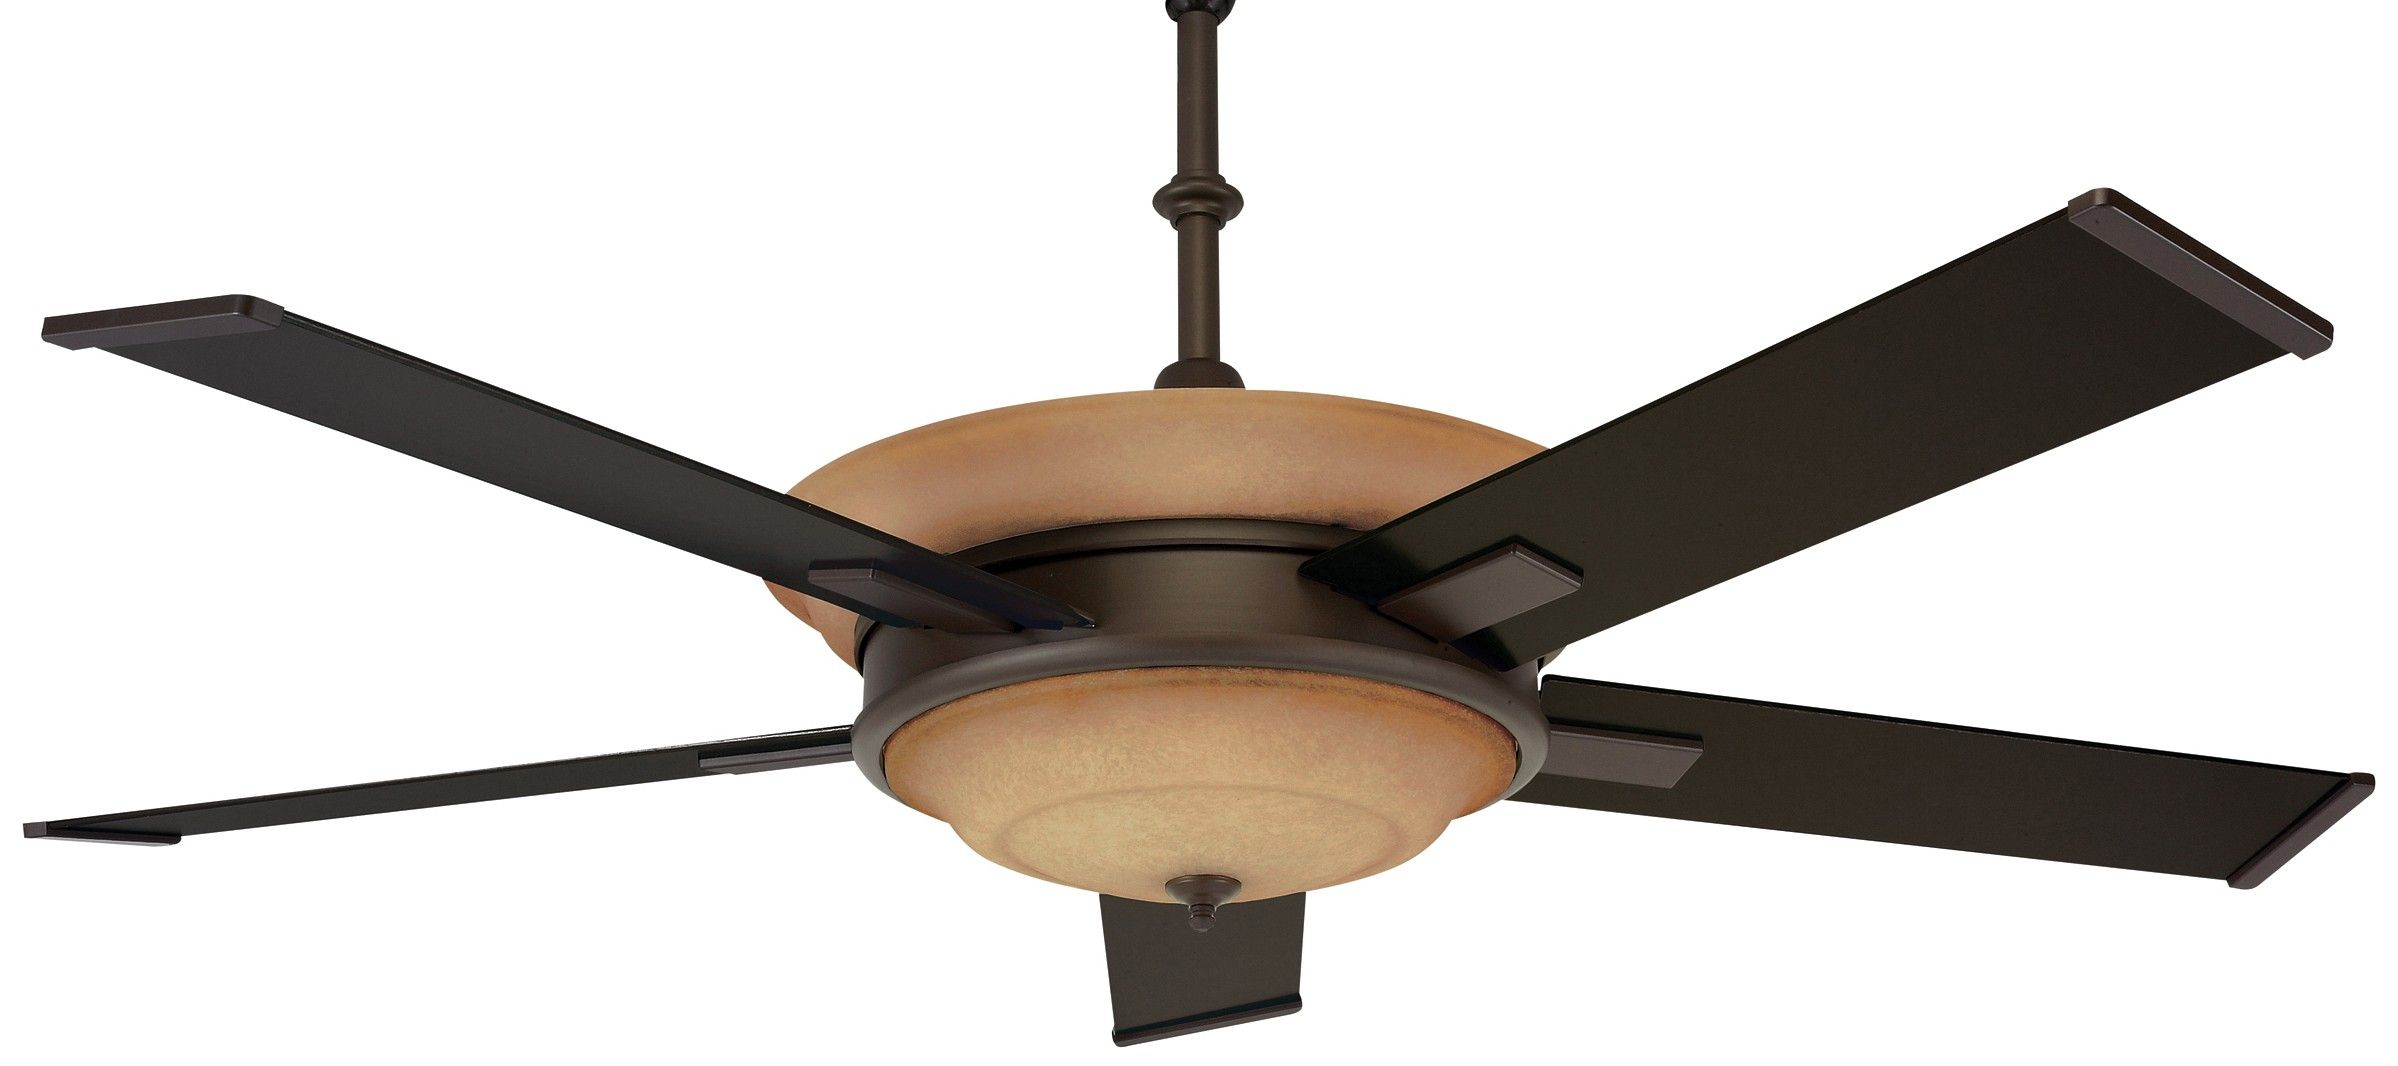 WX ORB Oil Rubbed Bronze fan es with Oil Rubbed Bronze blades